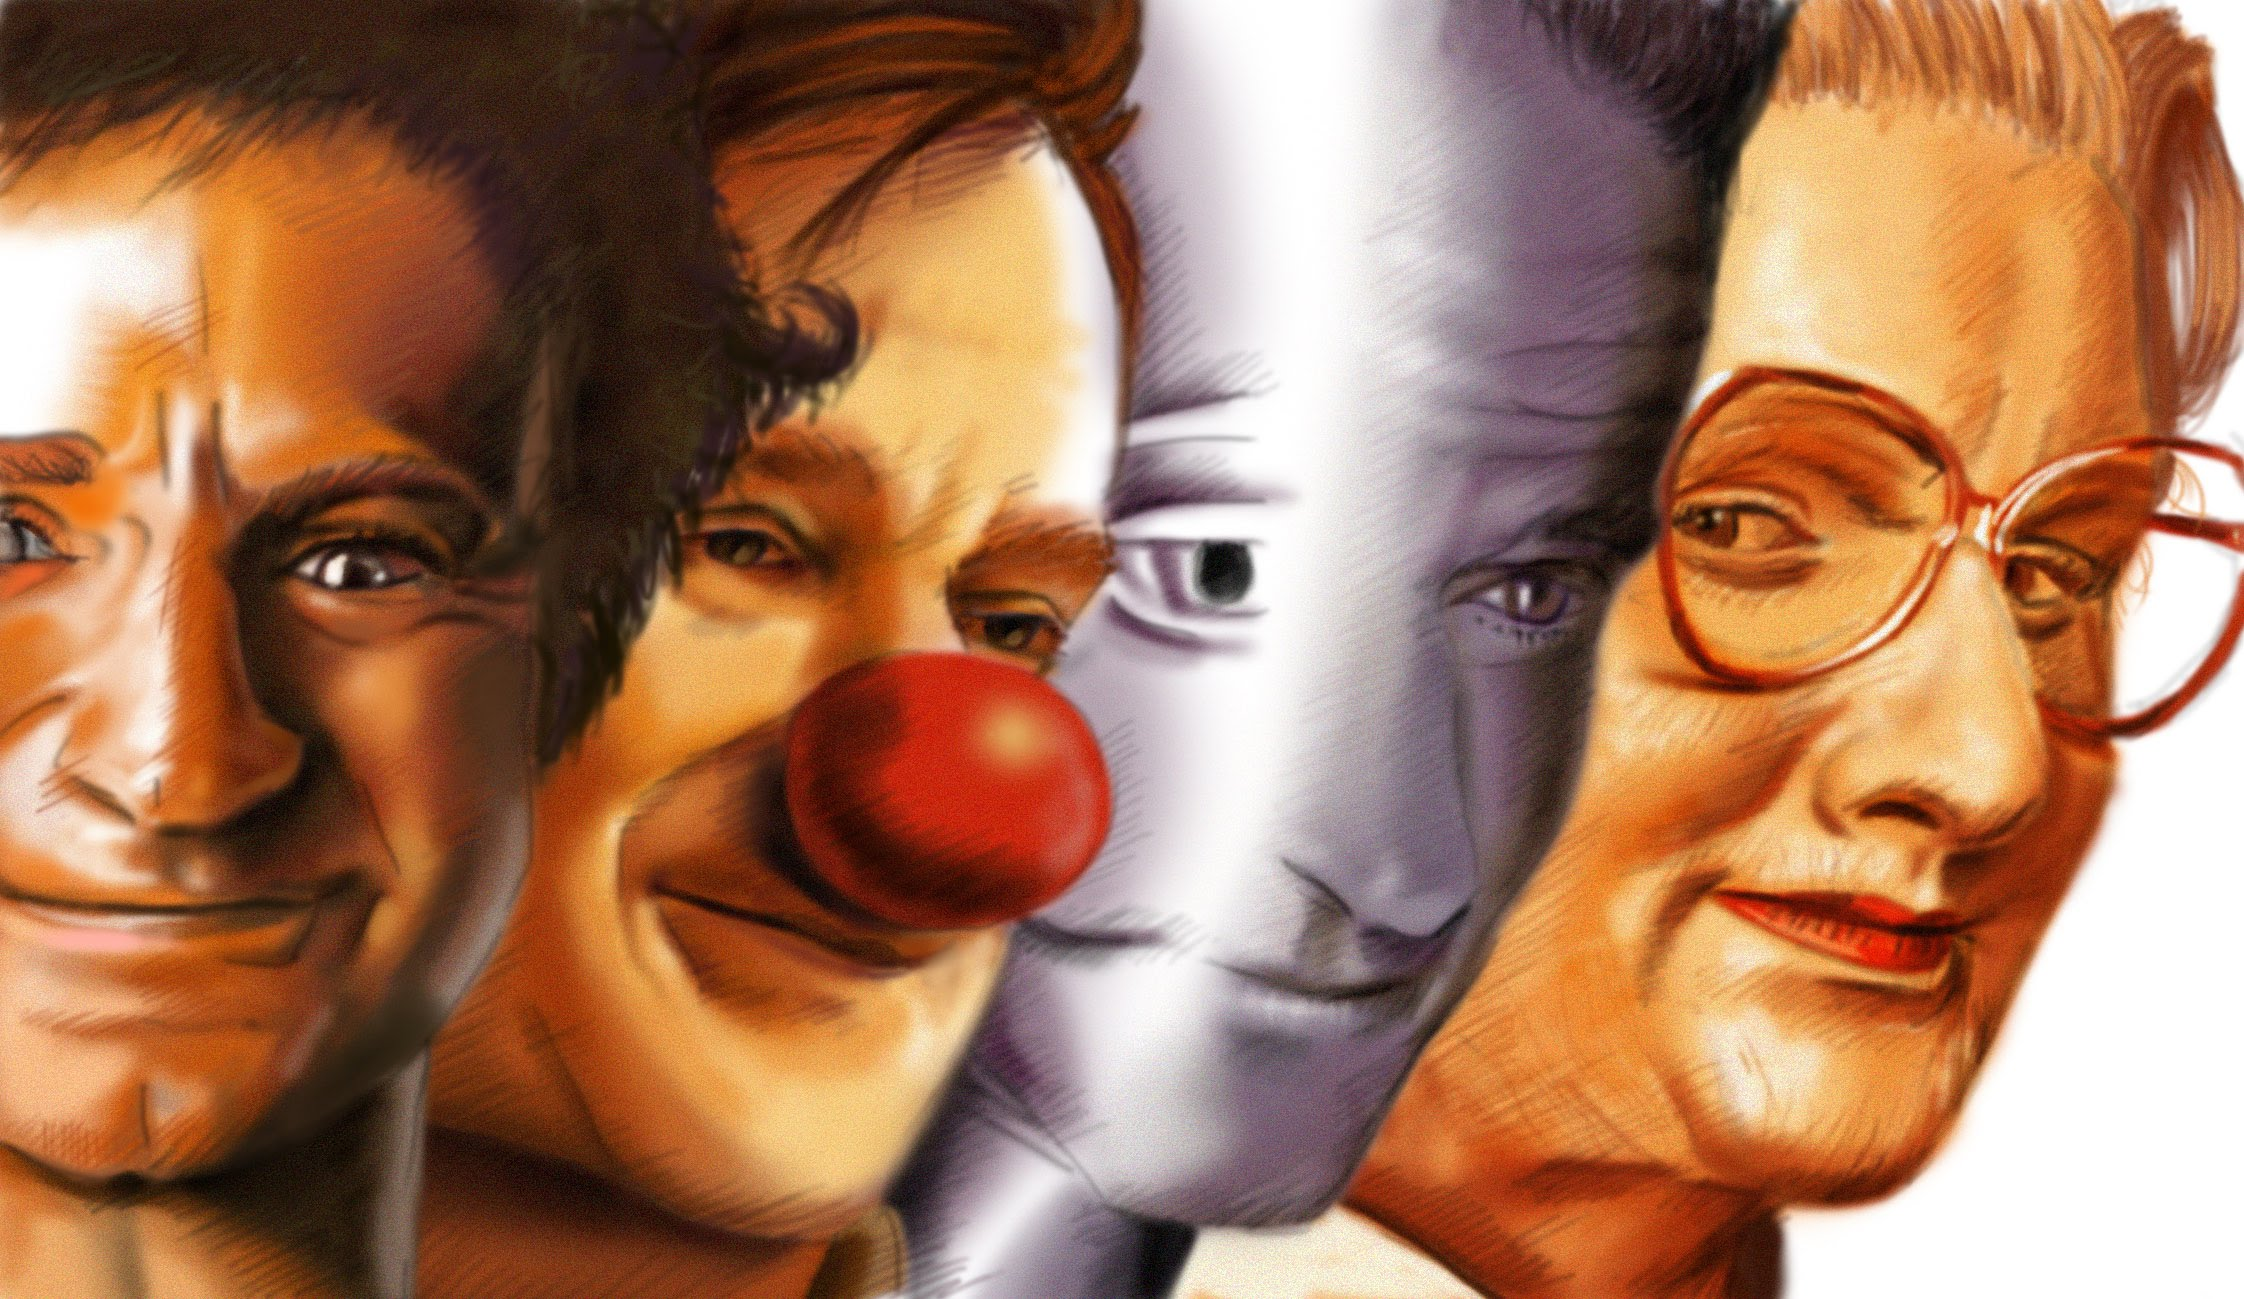 Drawn robin robin williams tribute Drawing tribute Robin speedpainting 2014